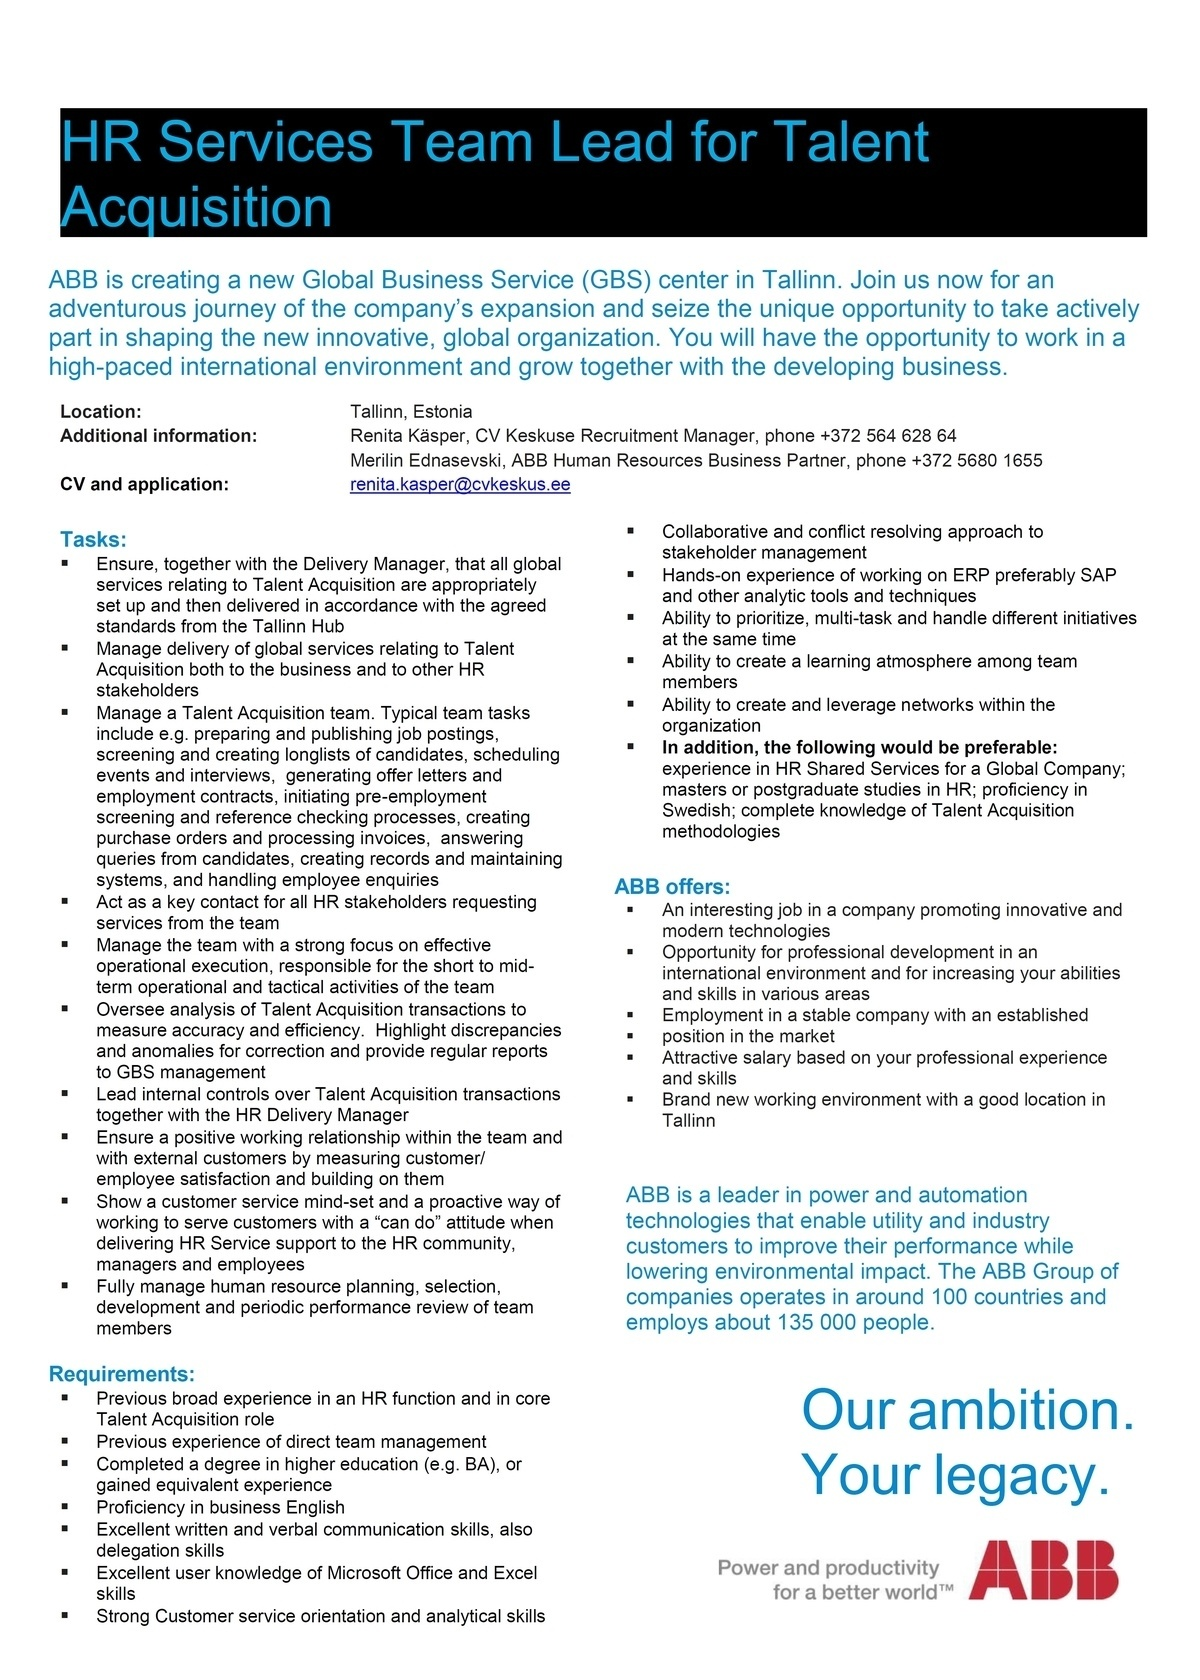 CVKeskus.ee klient ABB is looking for an HR Team Lead for Talent Acquistion